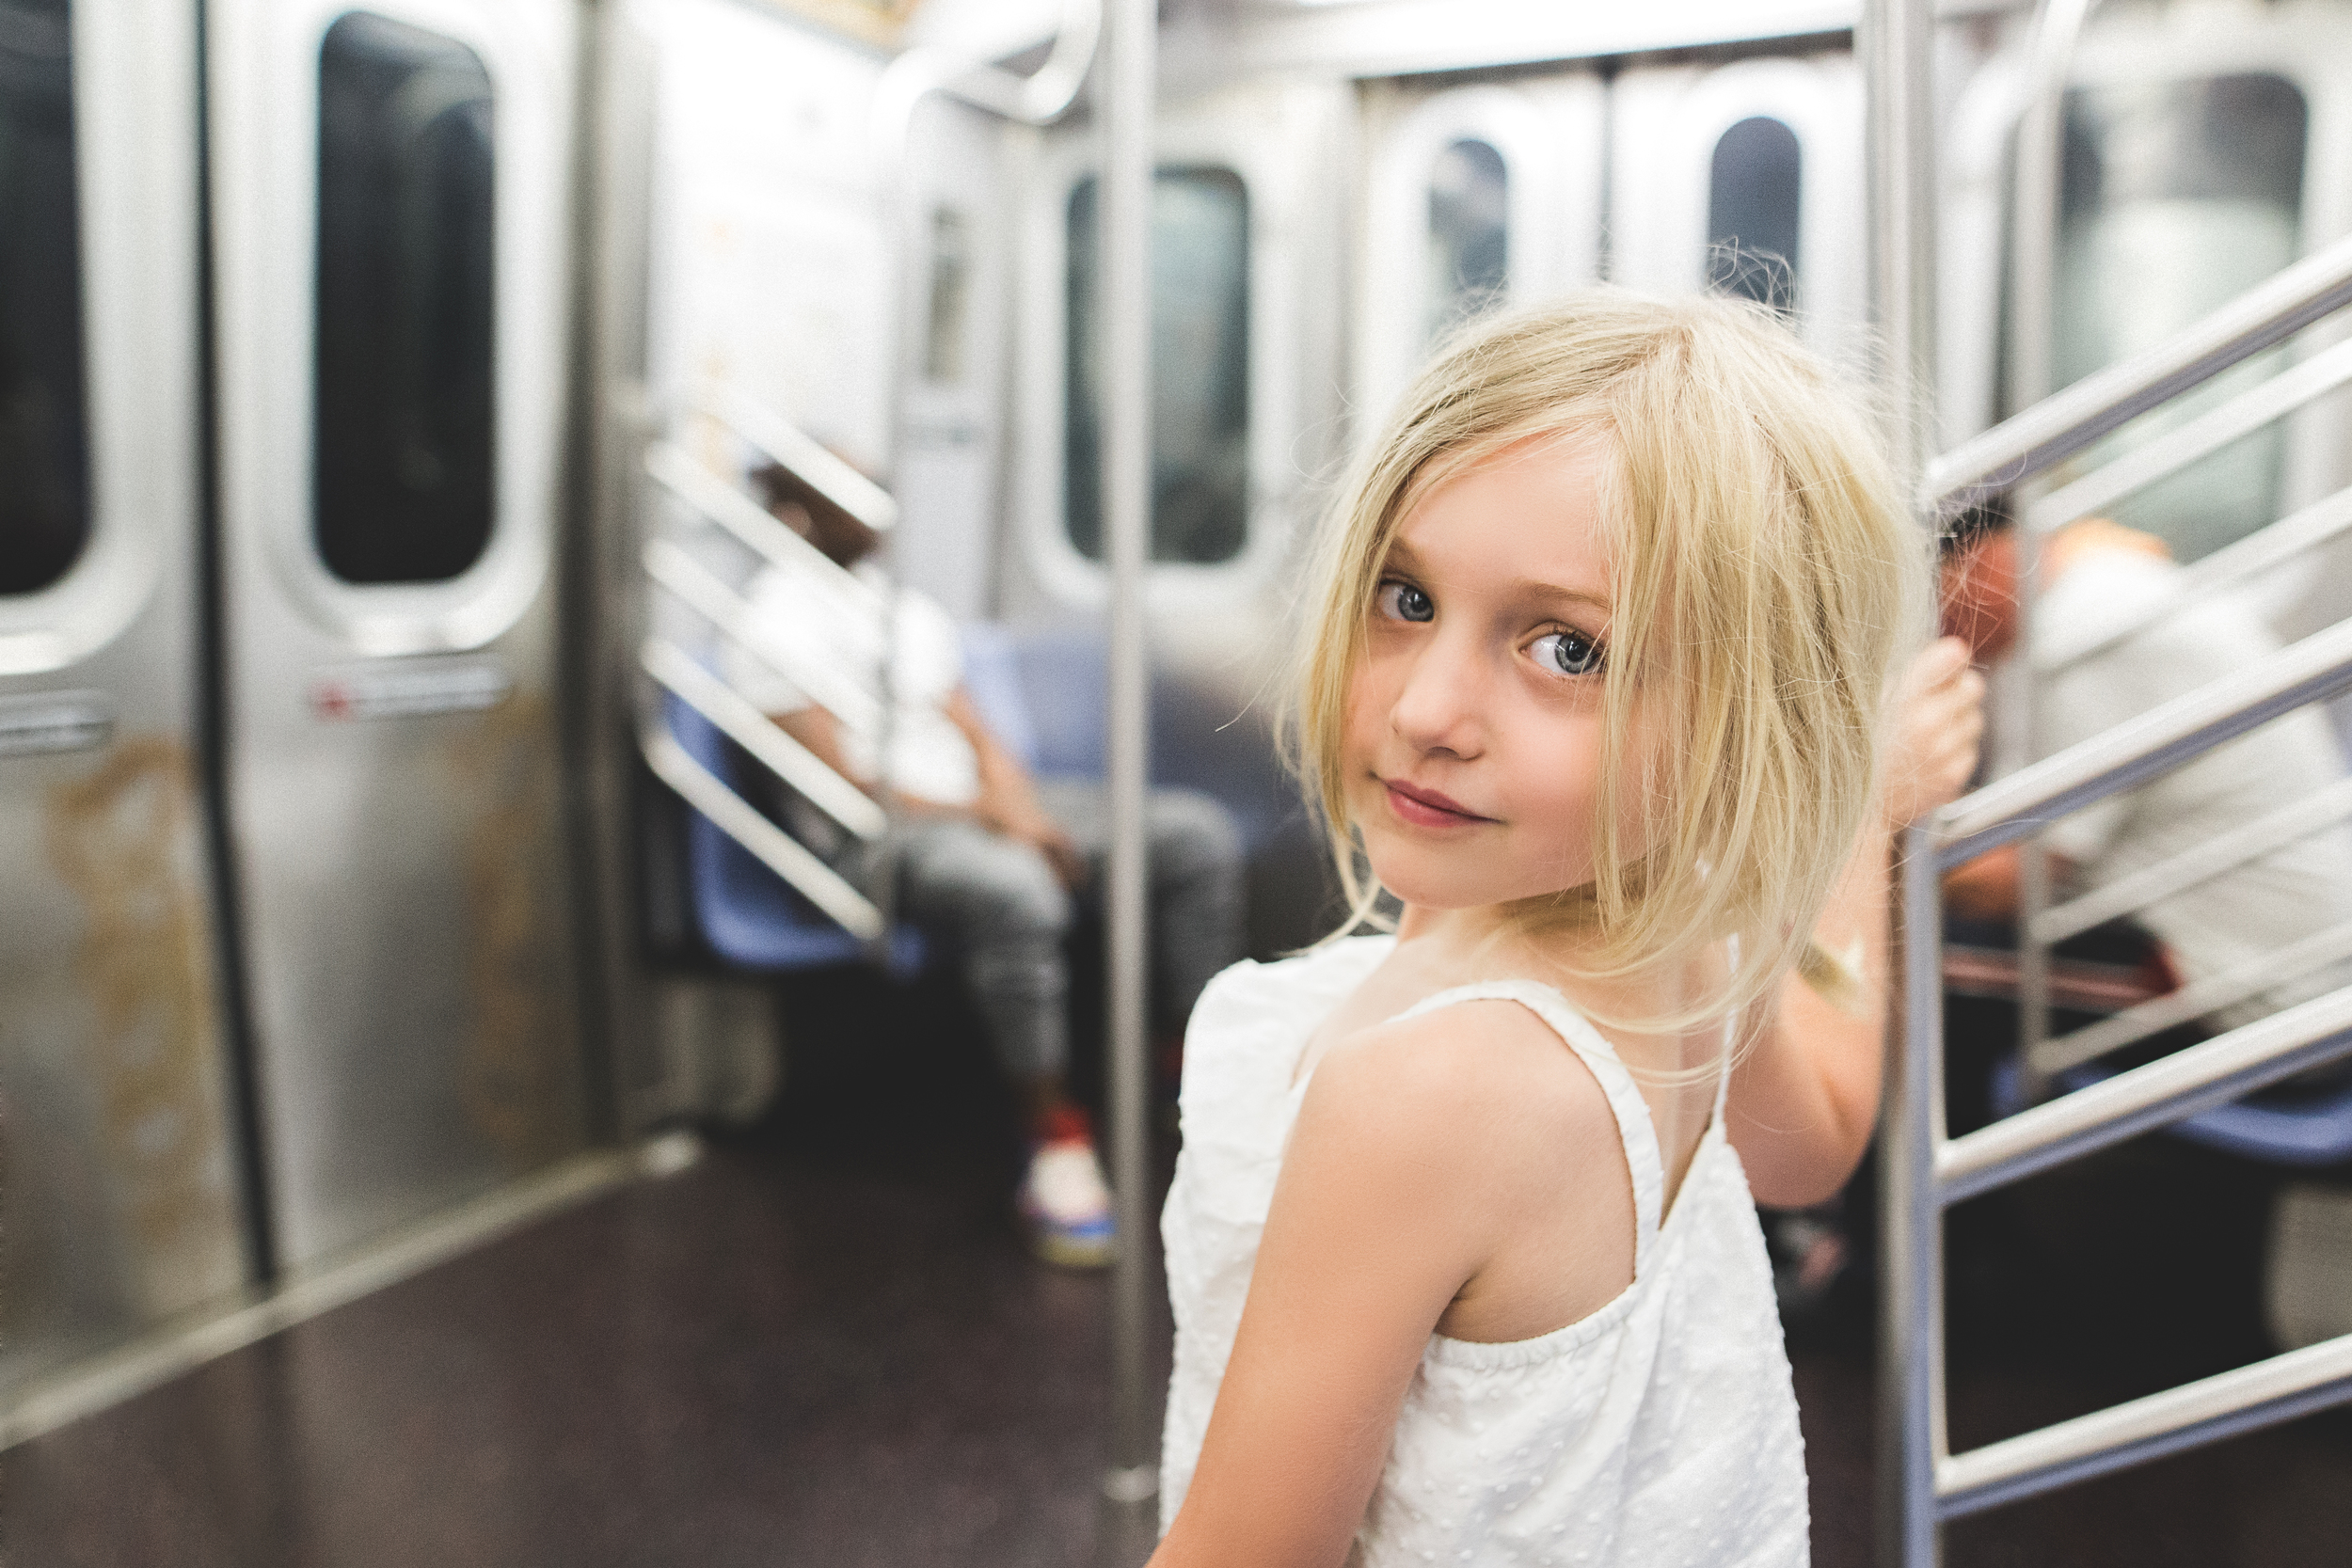 Hello-olivia-photography-long-lsland-family-children-documentary-photographer-hurry-take-the-A-train